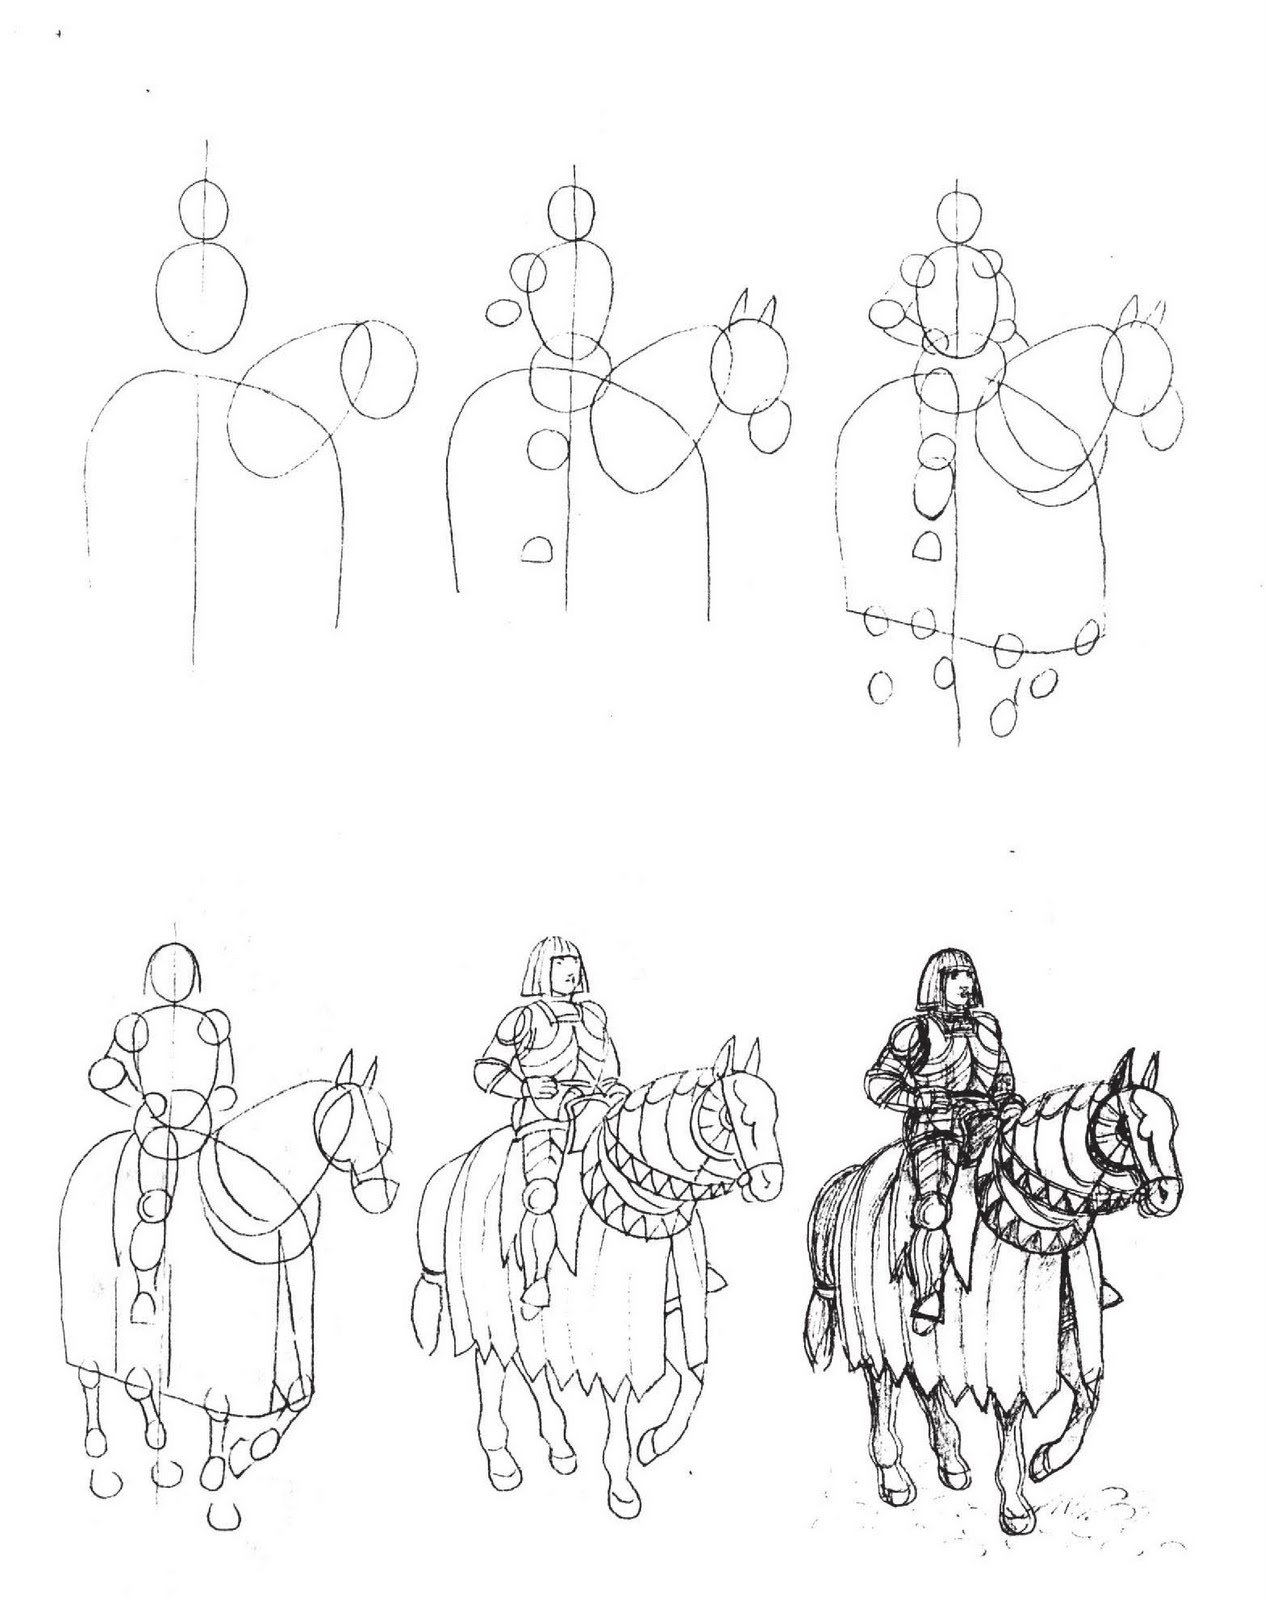 How To Draw Knight With Horse Jpg 1266x1600 Horse Armor With Knight Drawings